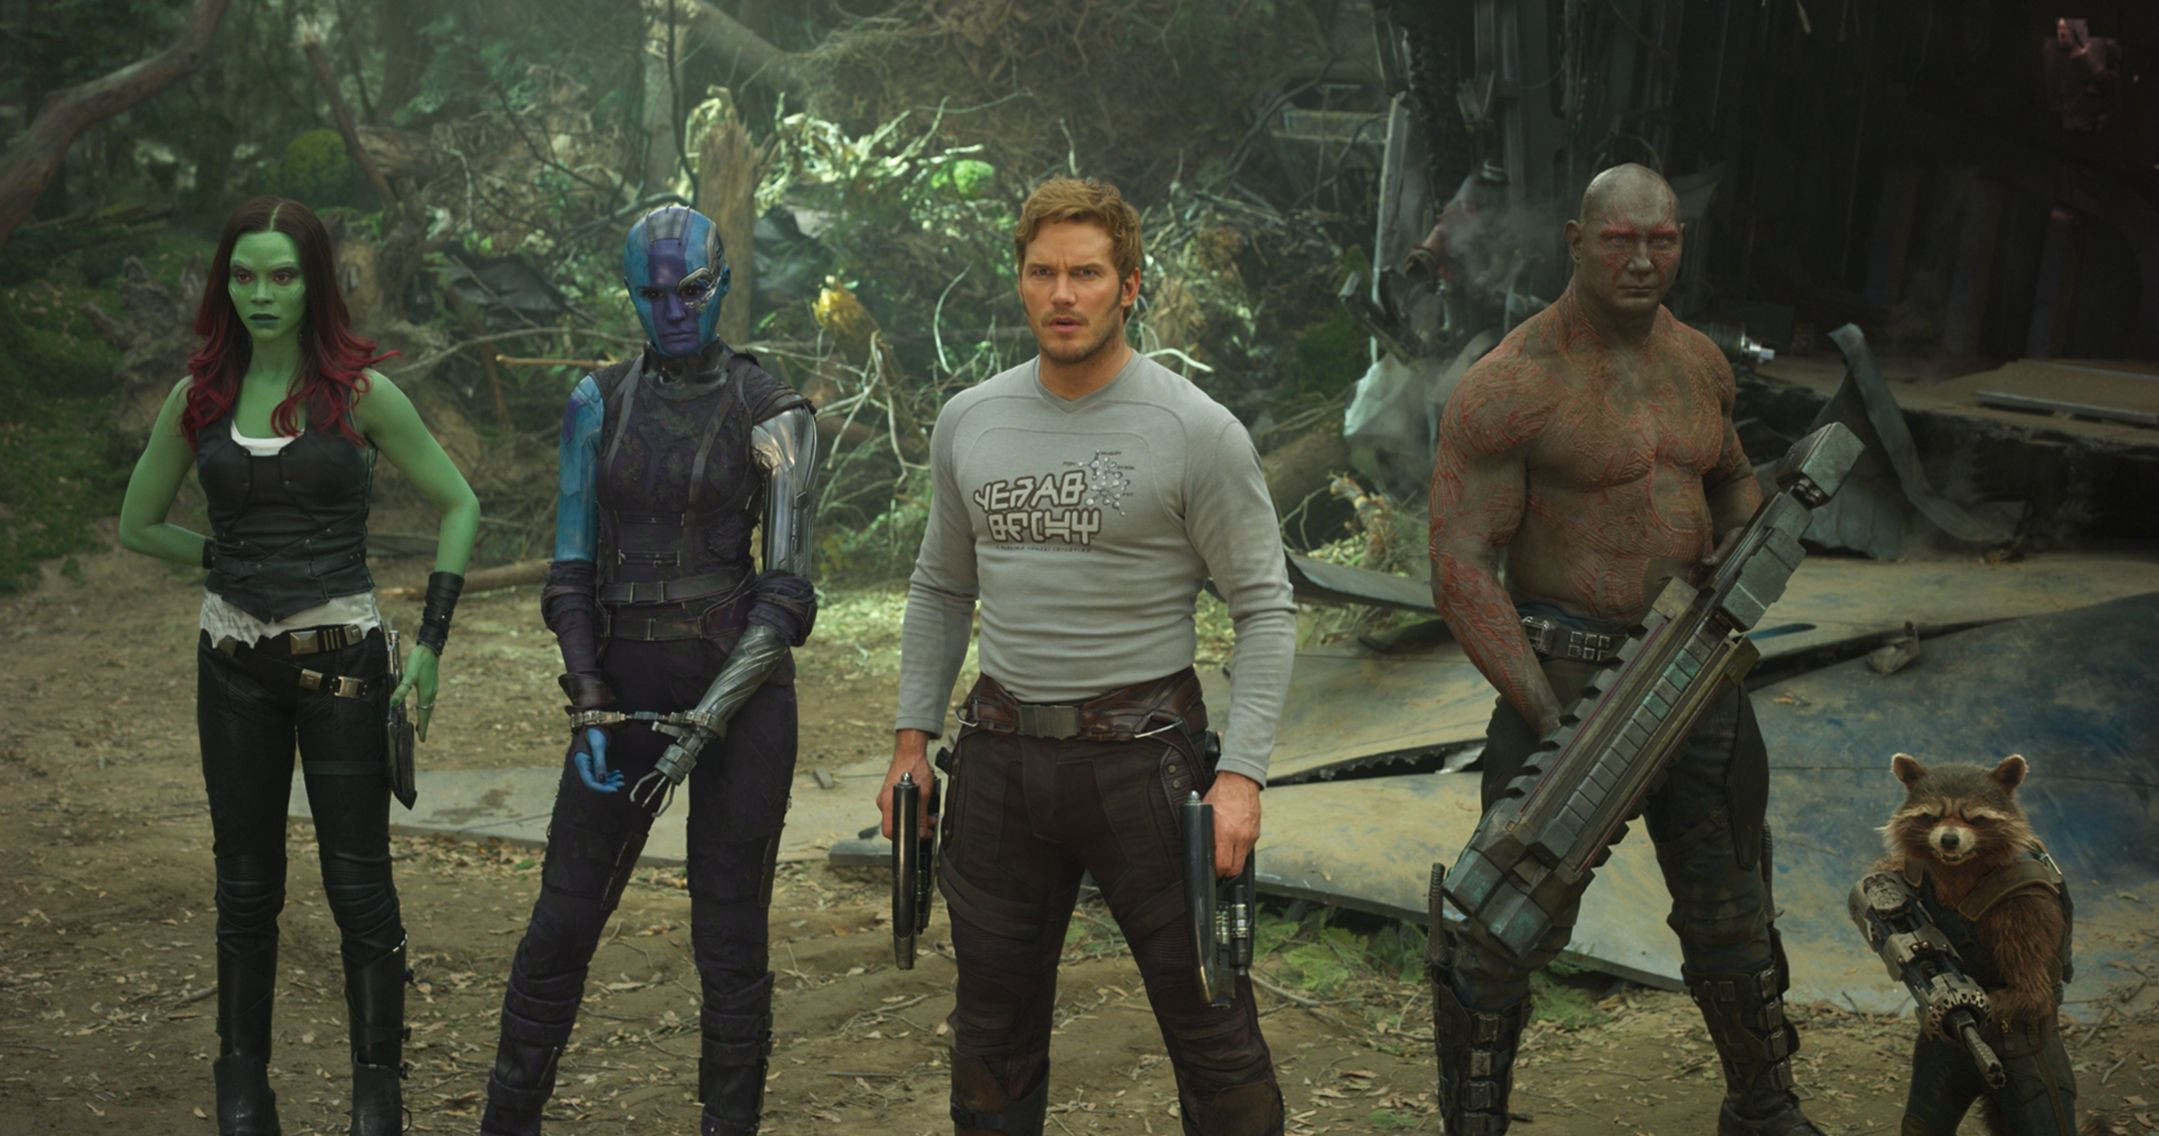 Chris Pratt promises Guardians Of The Galaxy 3 is coming